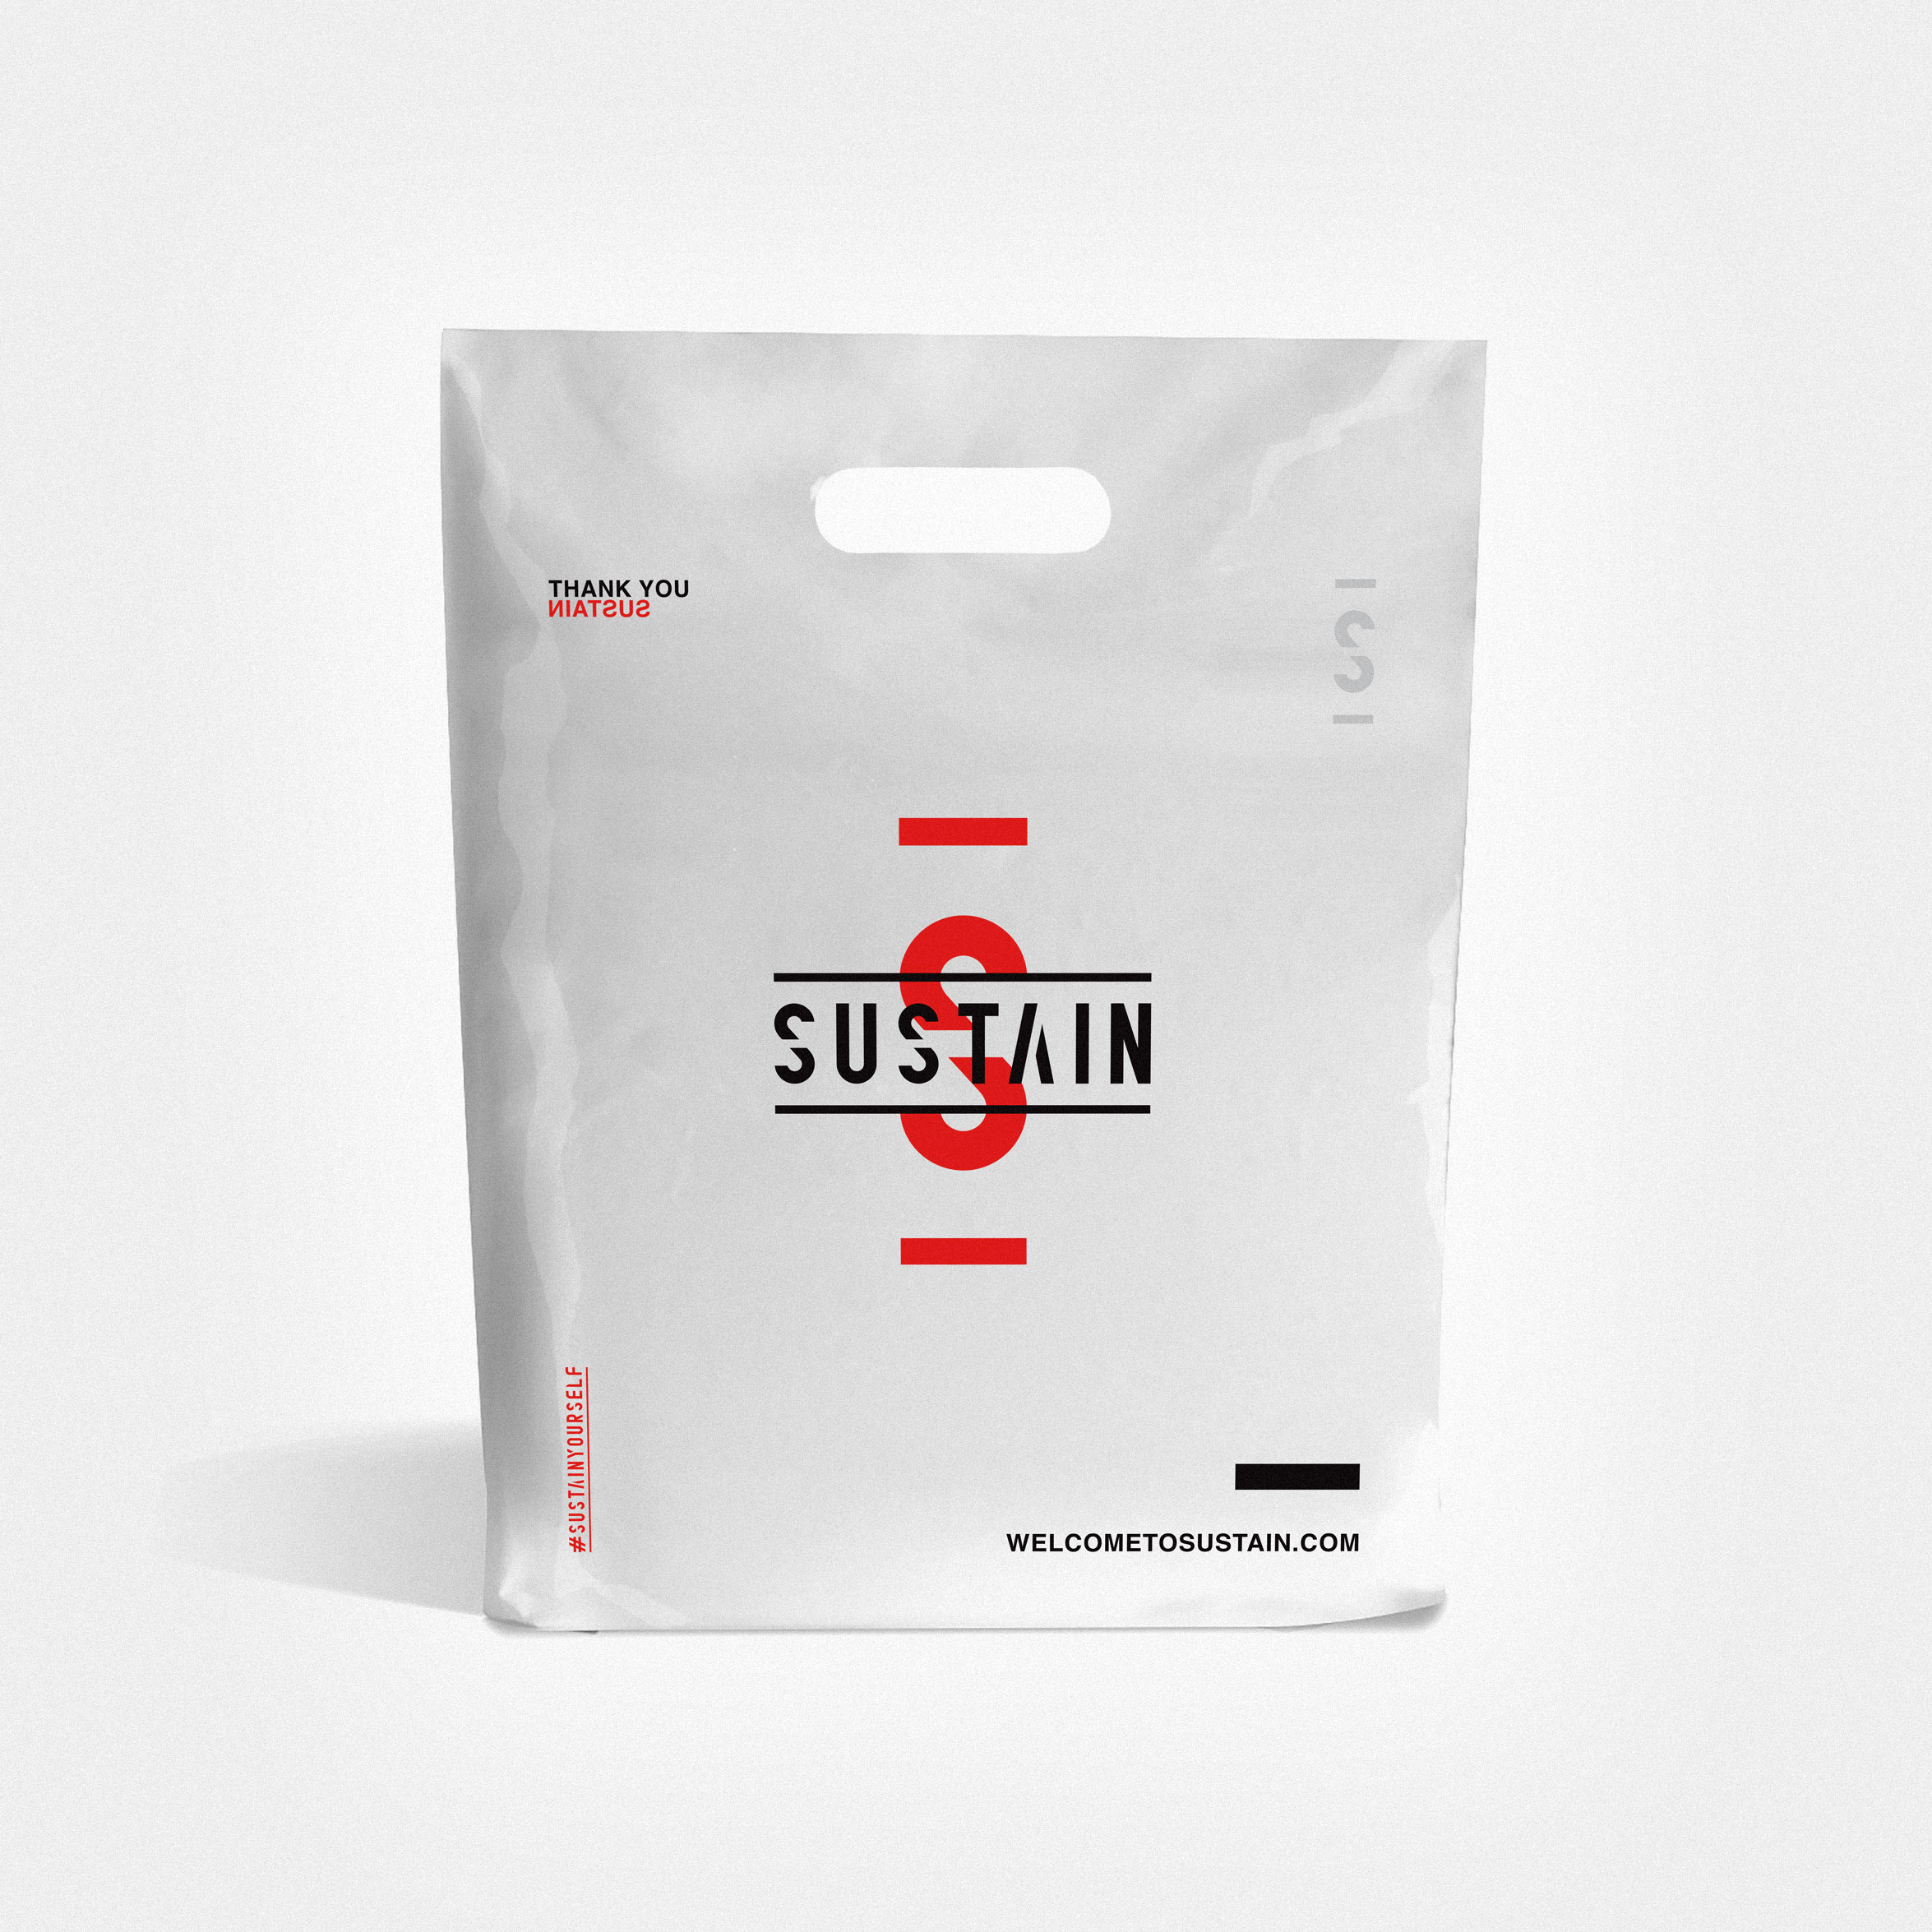 03-Sustain-02a